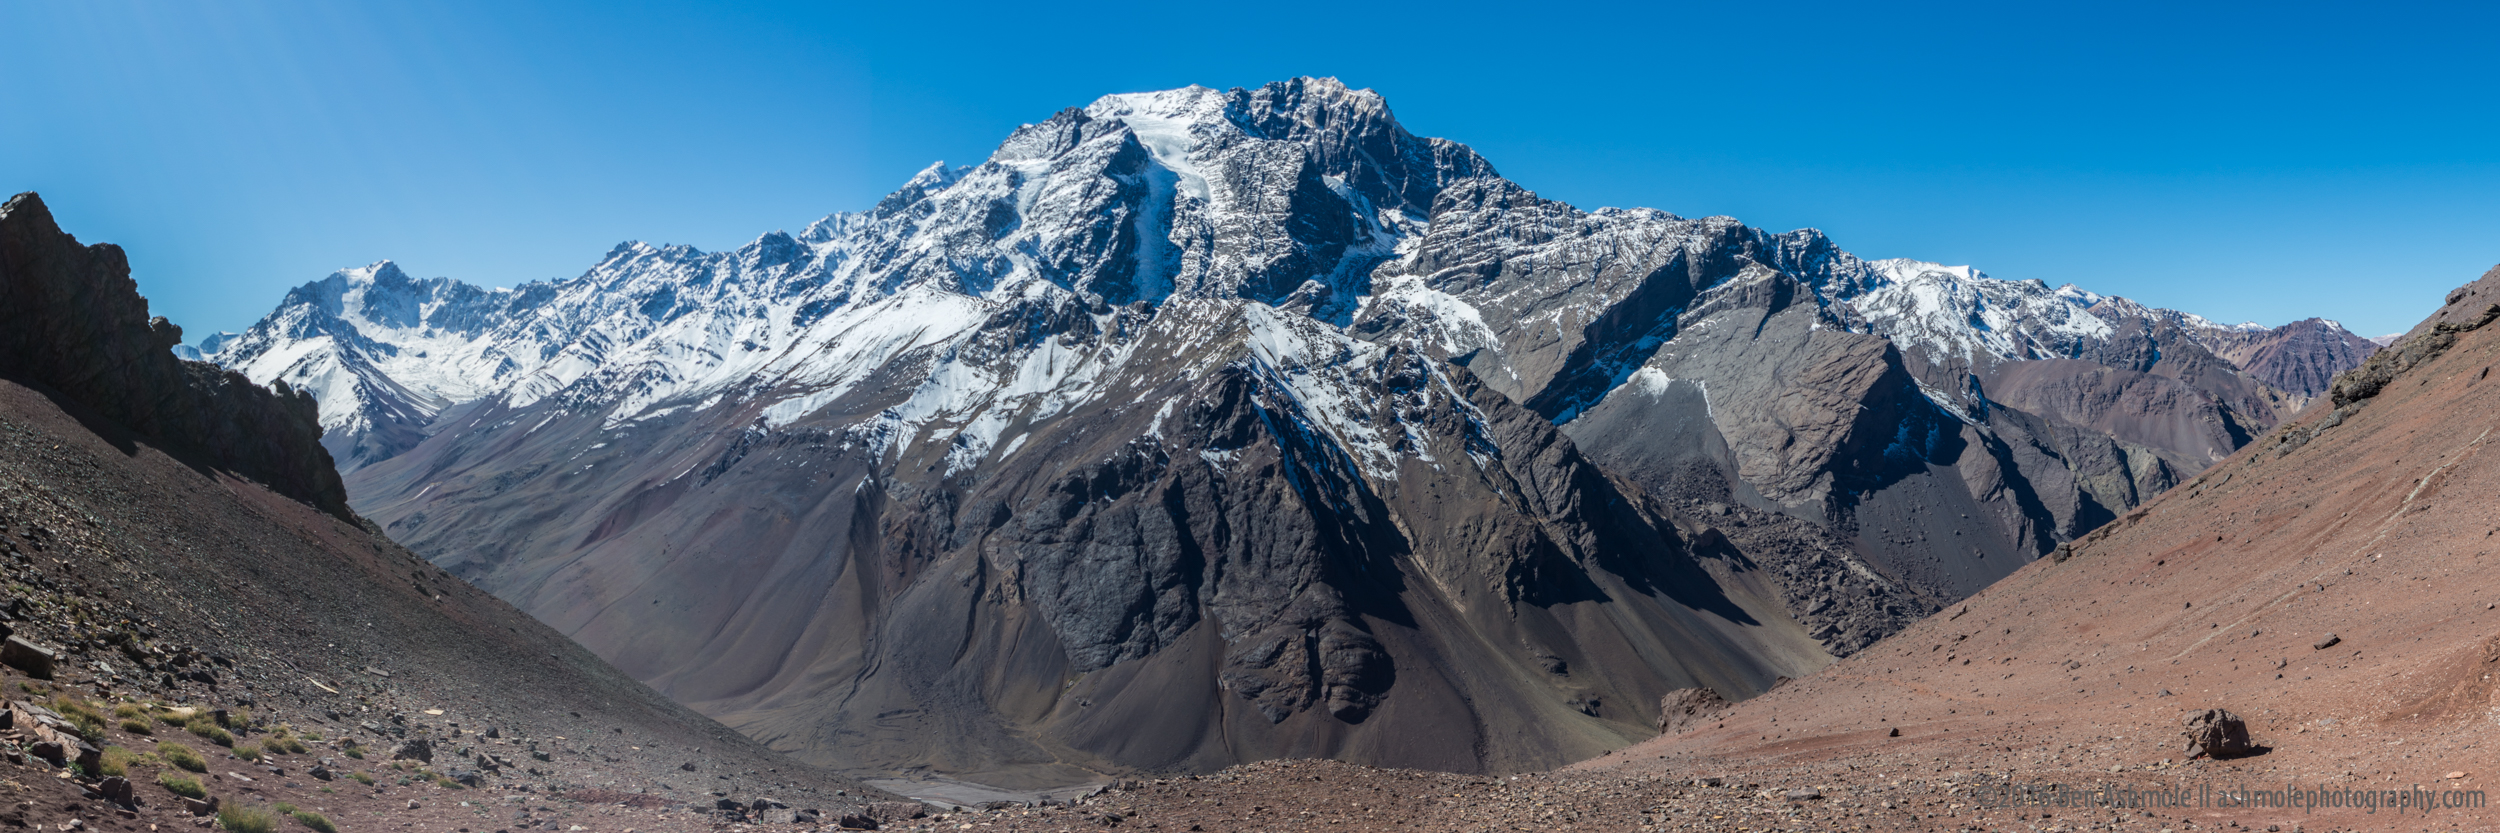 The Andes Panorama, Uspallata Pass, Chile